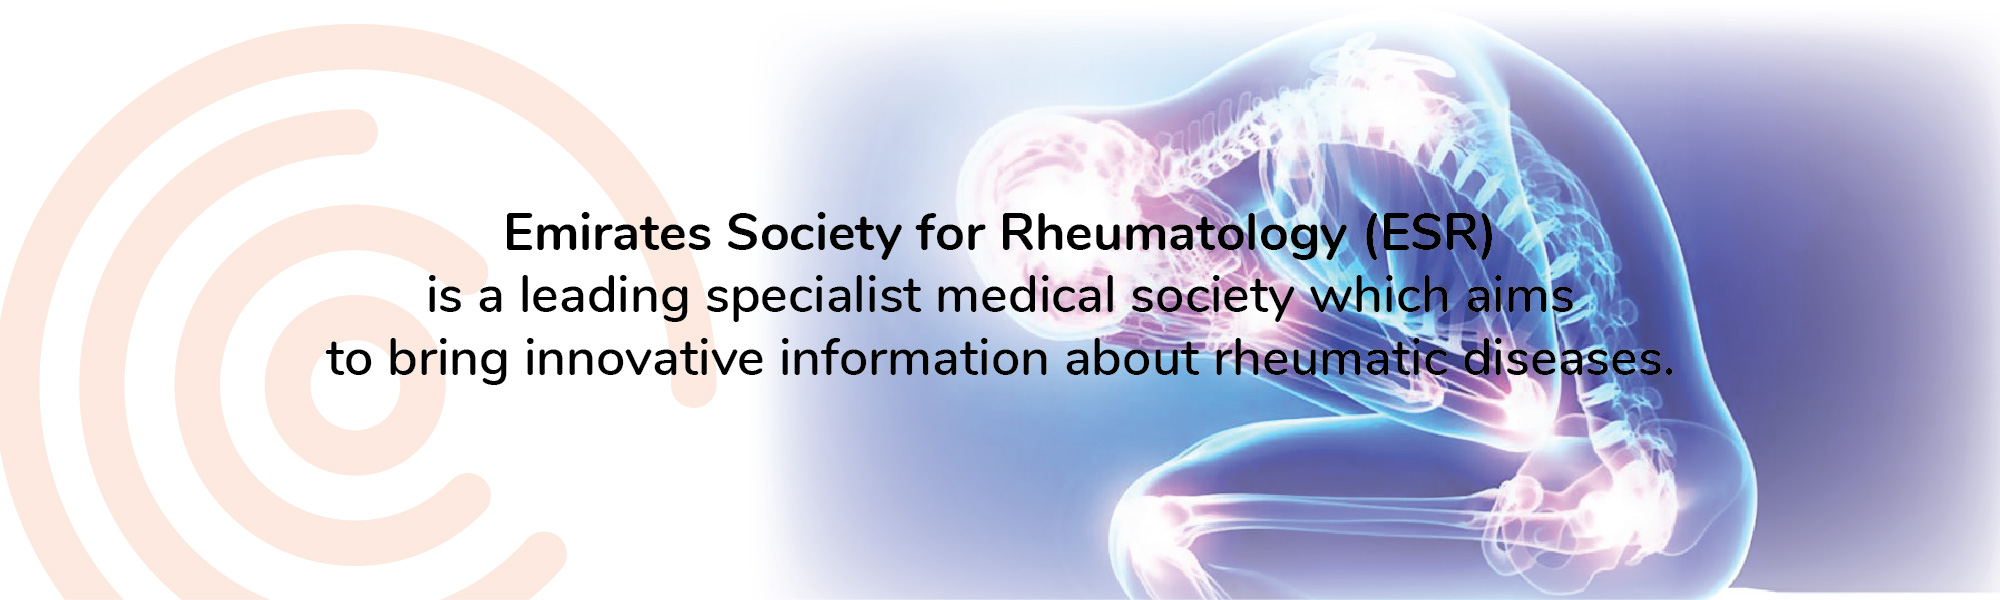 Emirates Society for Rheumatology – The Emirates Society for